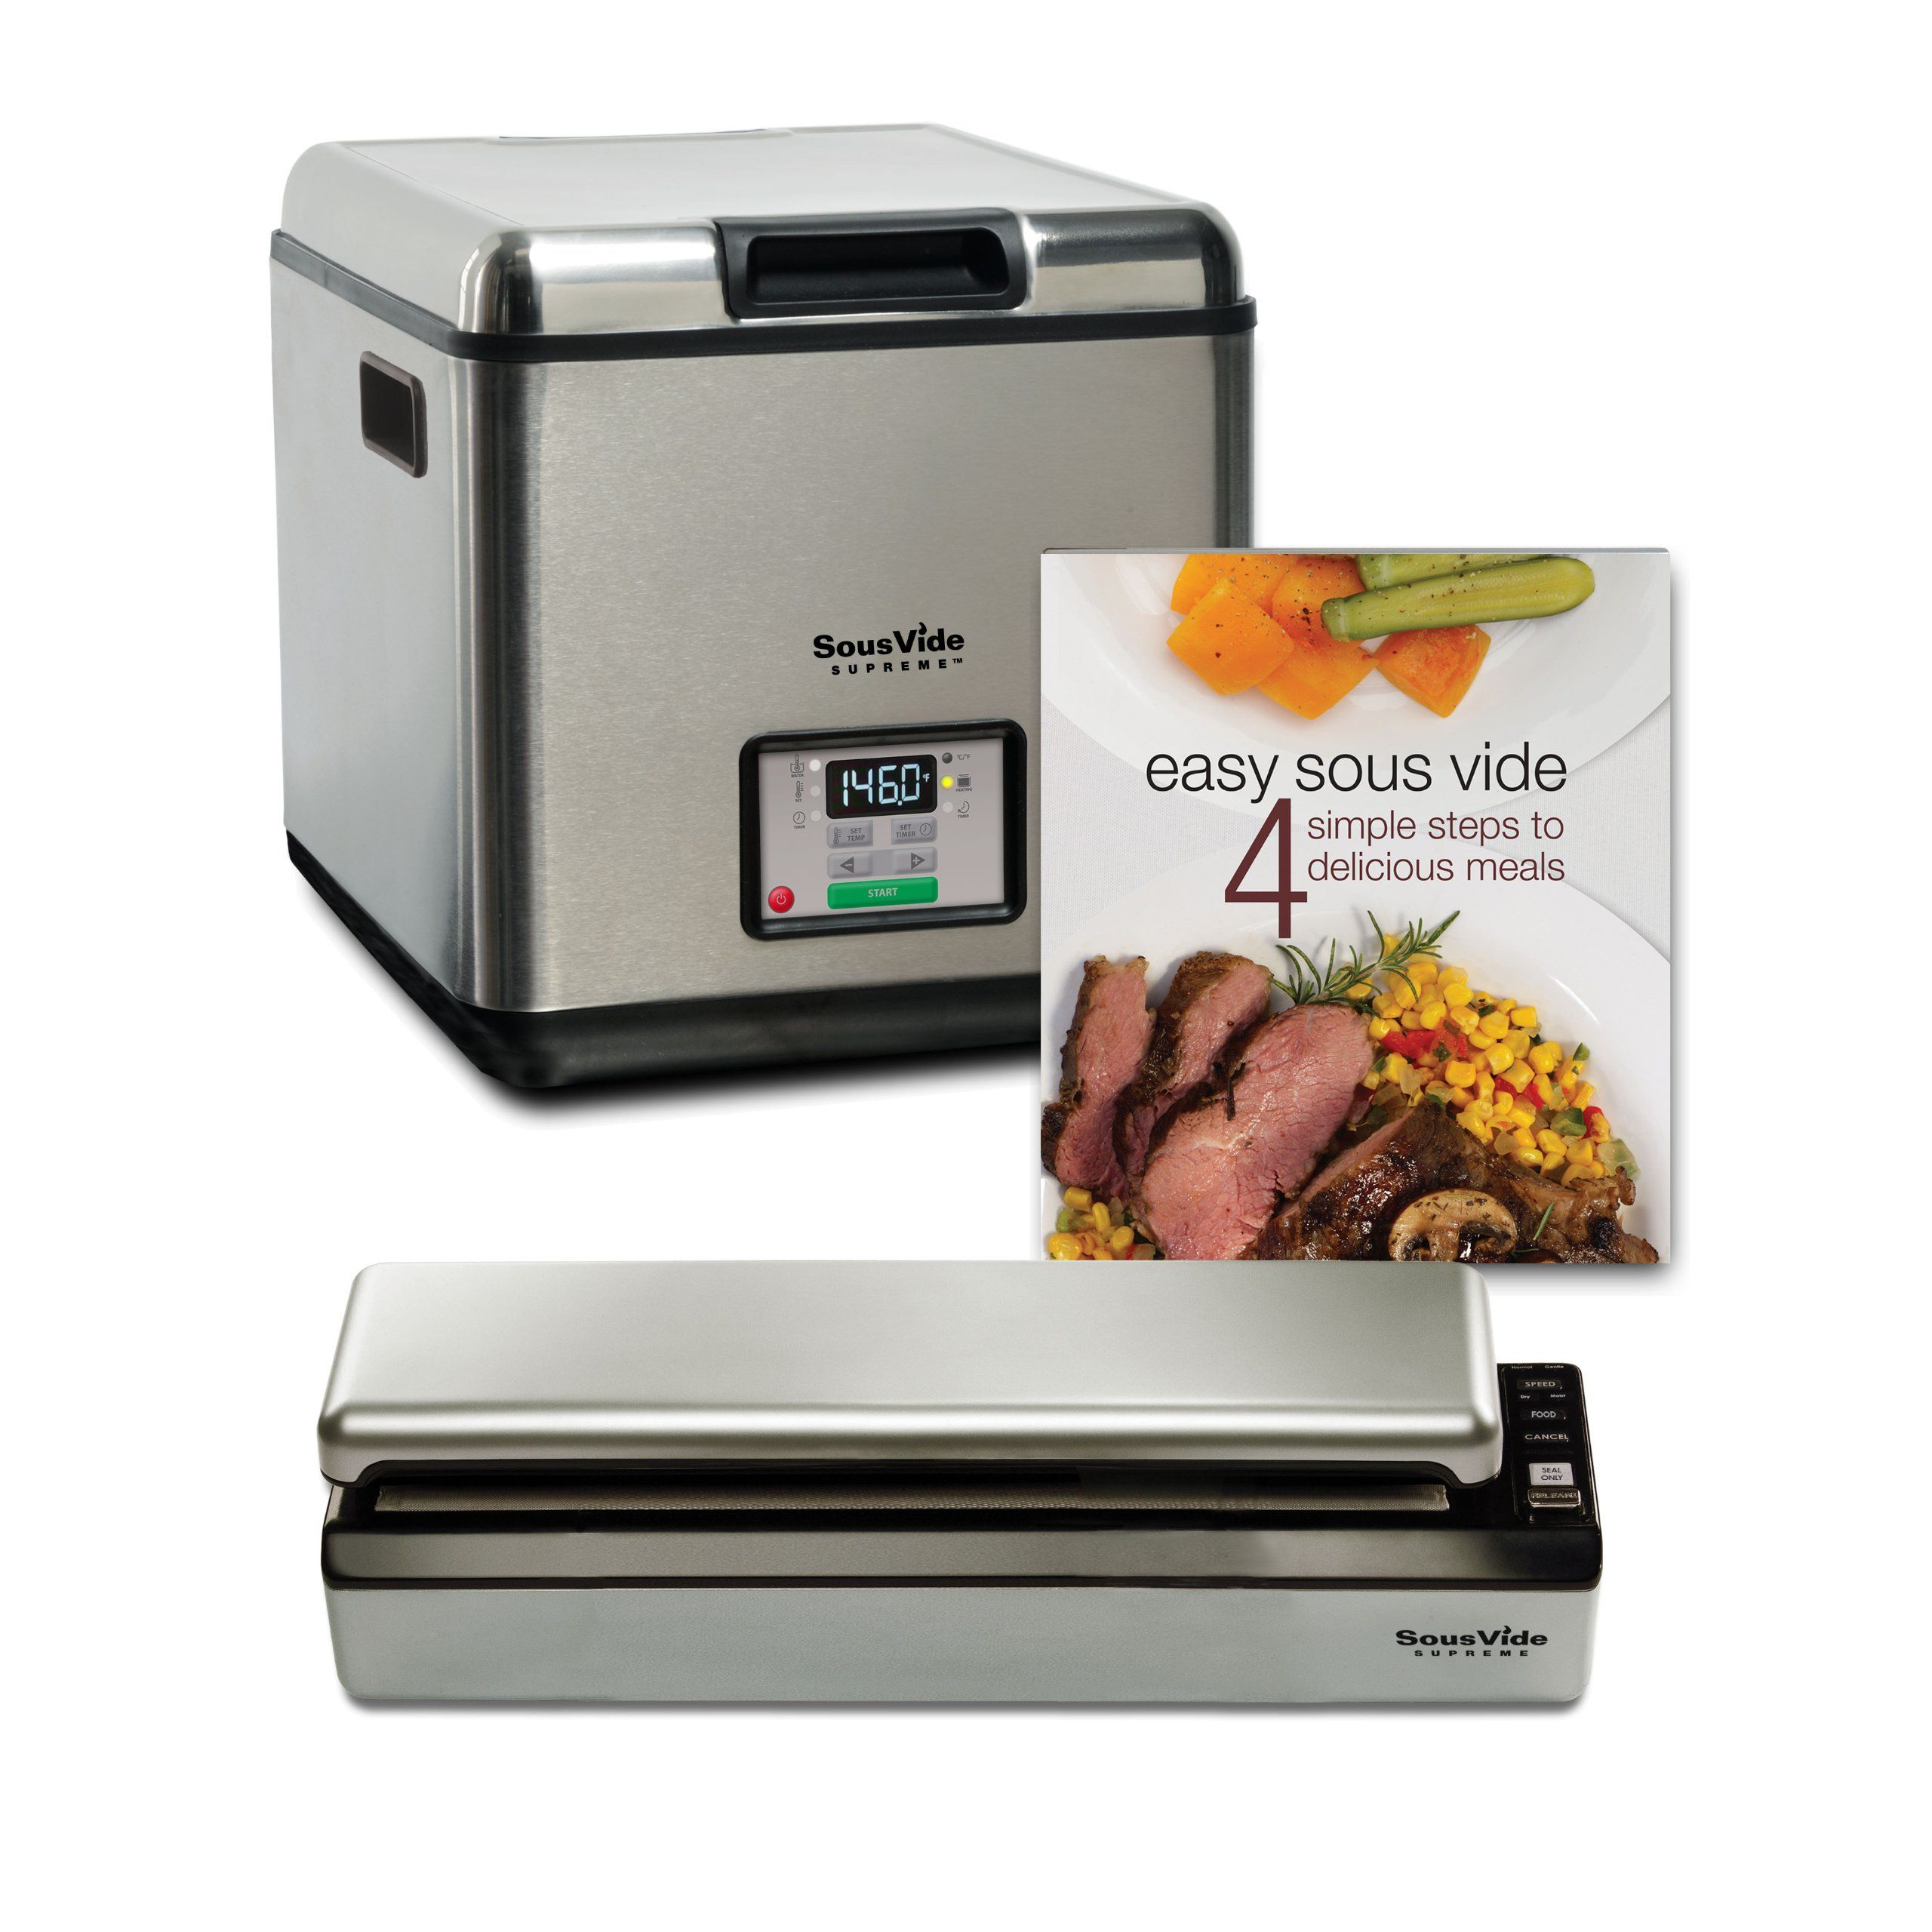 Sousvide Supreme Water Oven System The New Way To Cook Sous